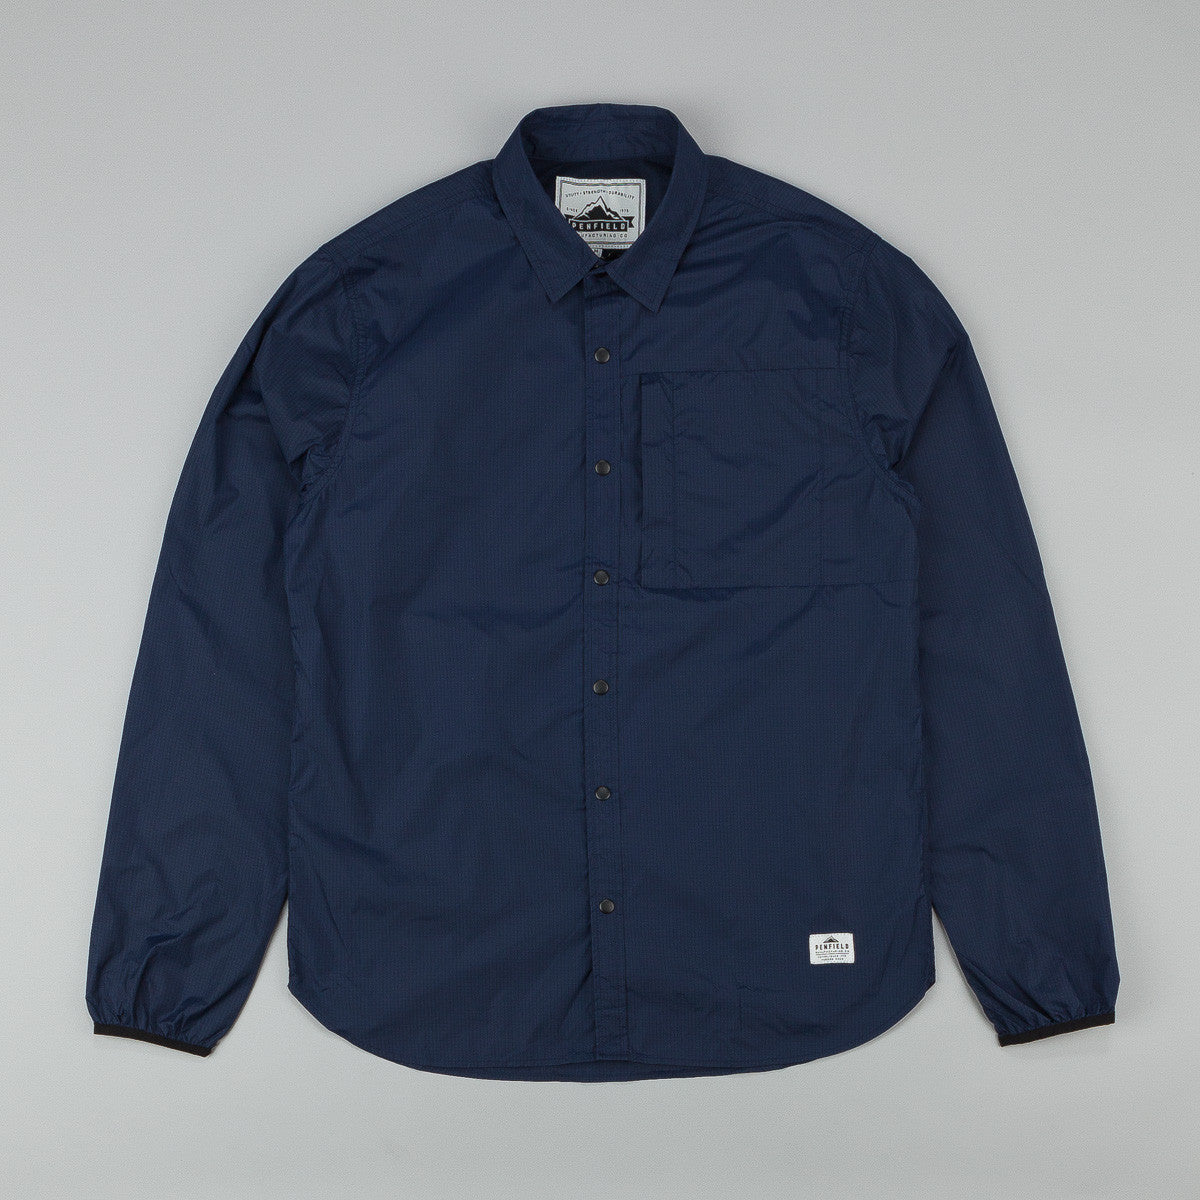 Penfield Underfield Ripstop Nylon Packable Shirt - Navy